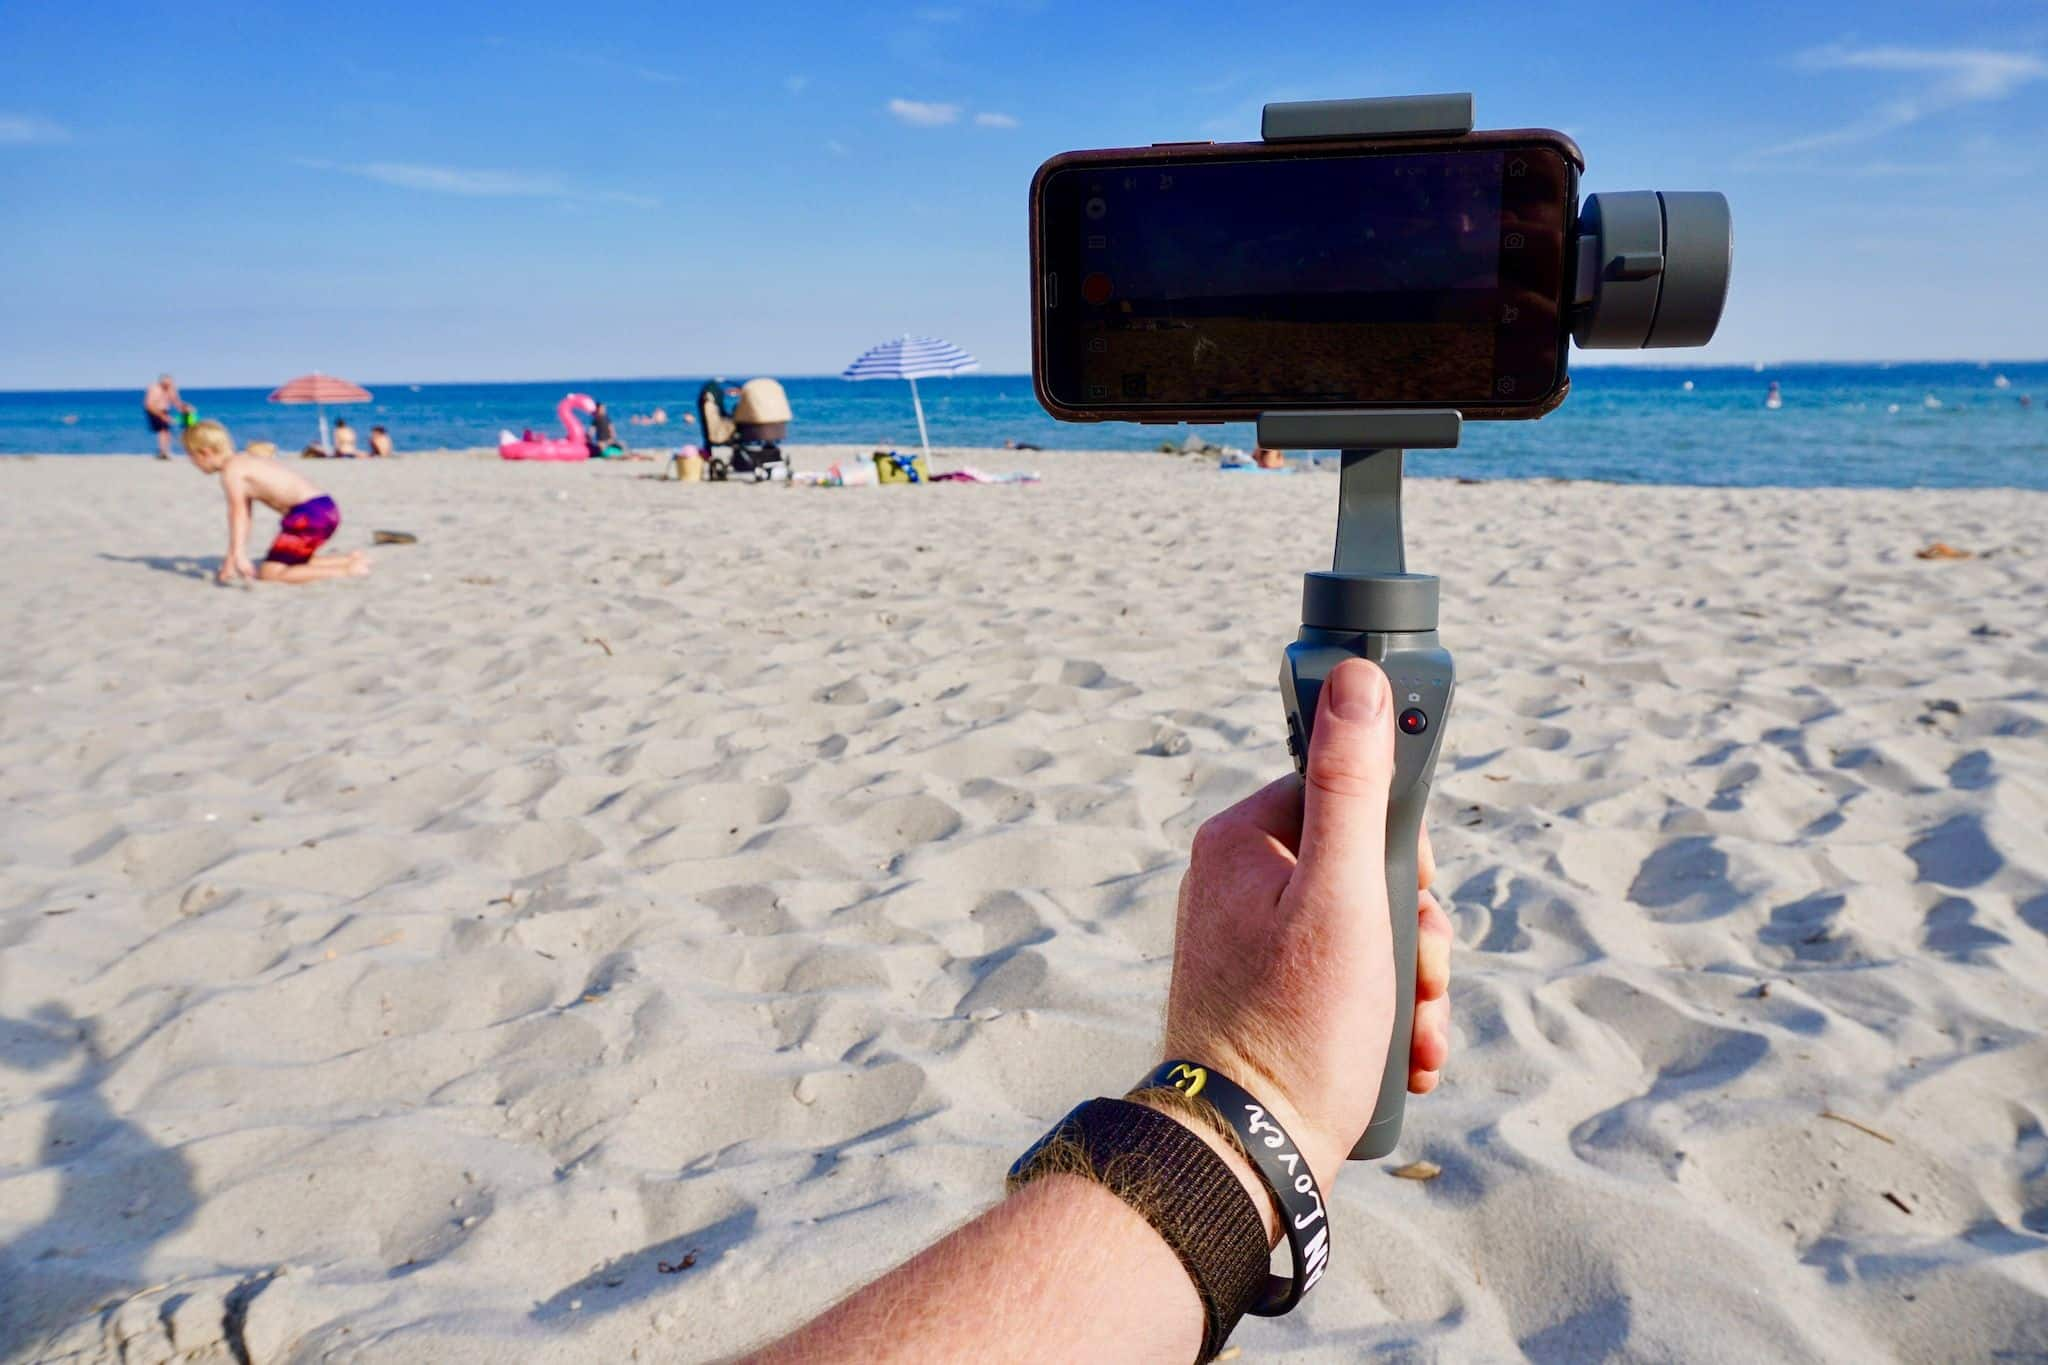 DJI Osmo Mobile 2 in the test: Does the gimbal bring stability to